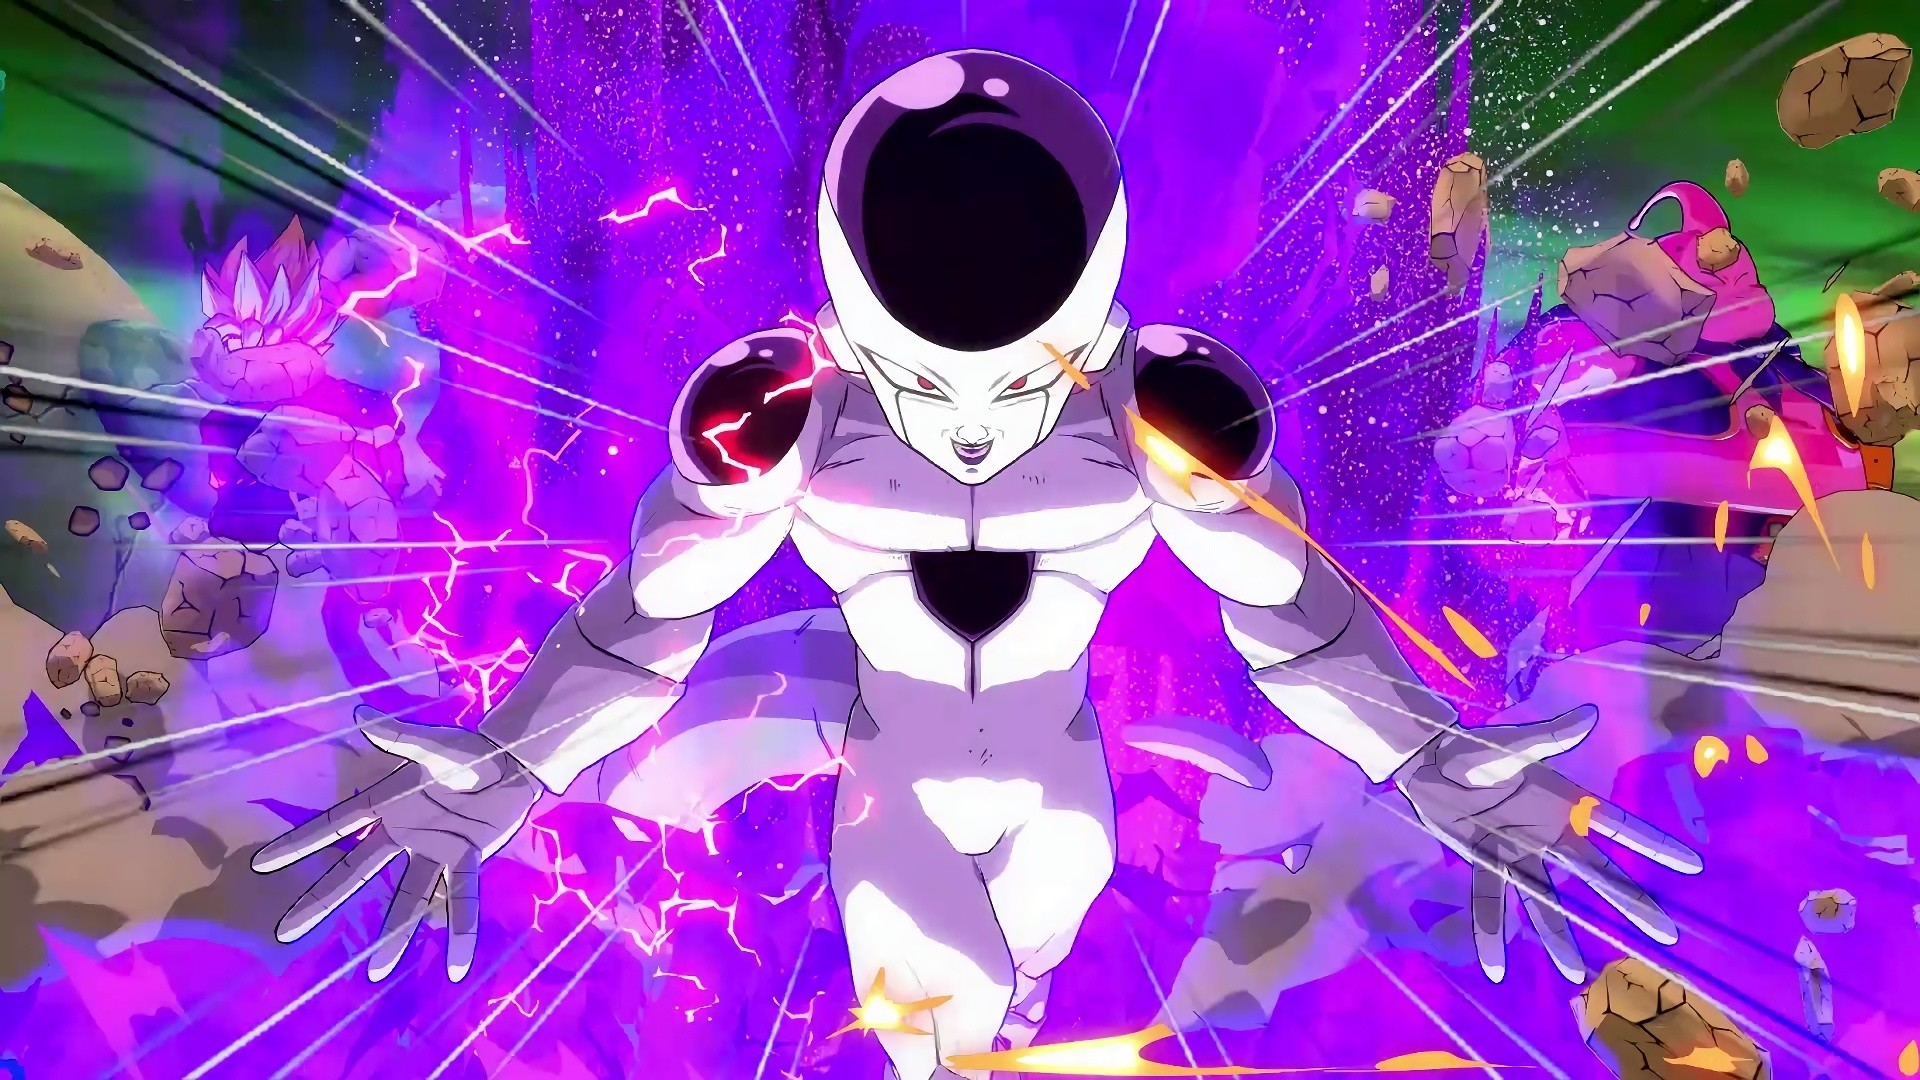 Res: 1920x1080, Frieza Dragon Ball Fighterz Game, Video Game, Dragon Ball Fighterz, Video  Game Backgrounds